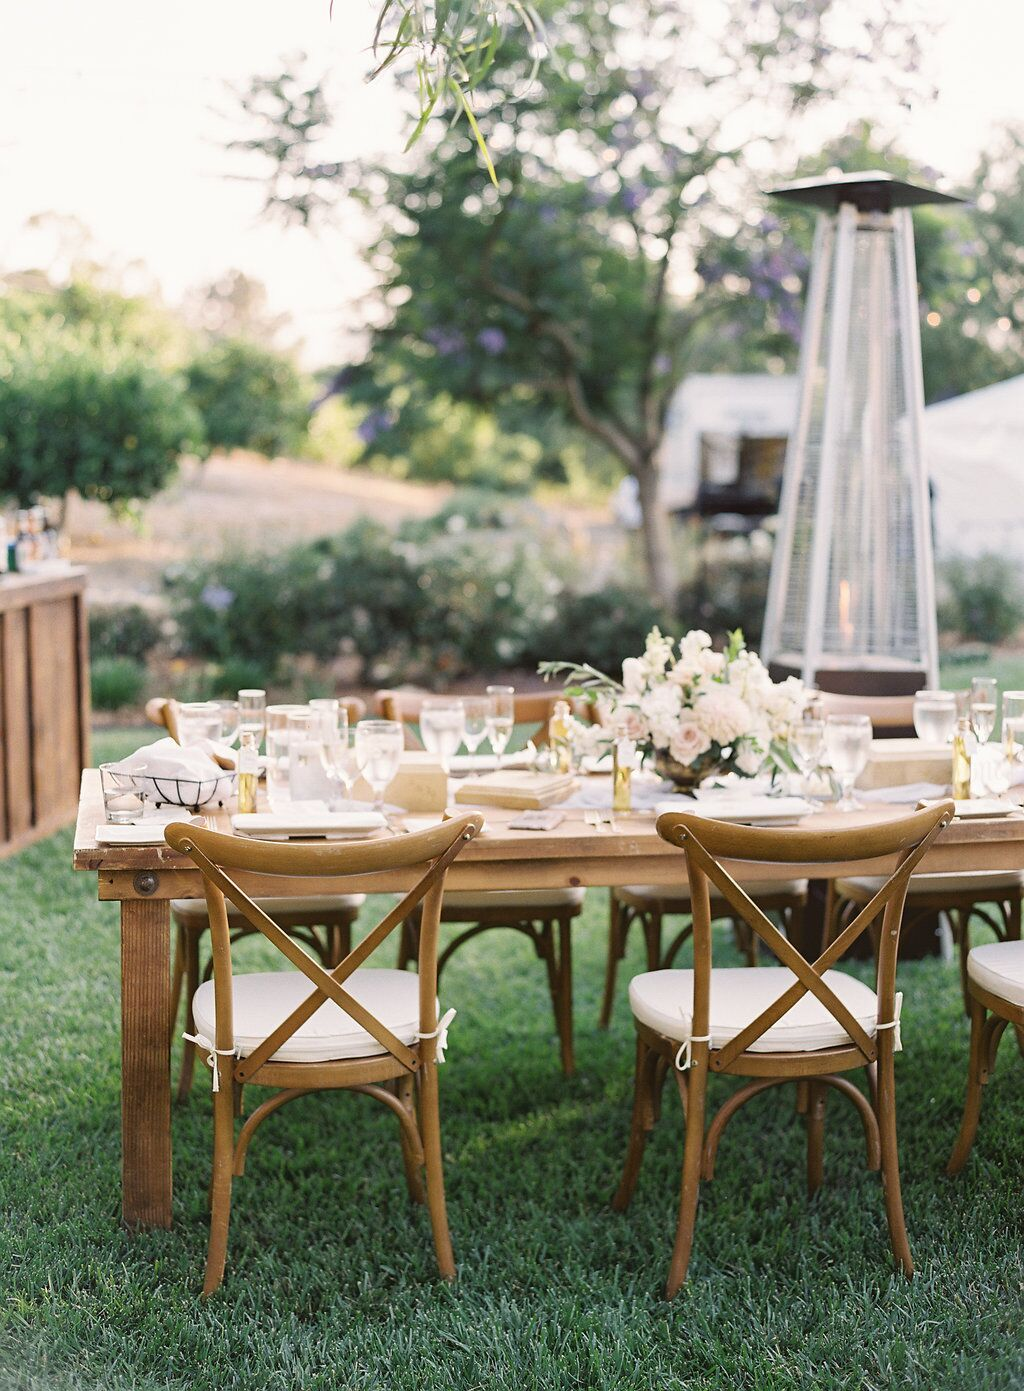 Farm Tables And More San Diego Table Rentals San Diego Wedding Rentals Southern C Rustic Table Decor Wedding Southern California Wedding Table Decorations